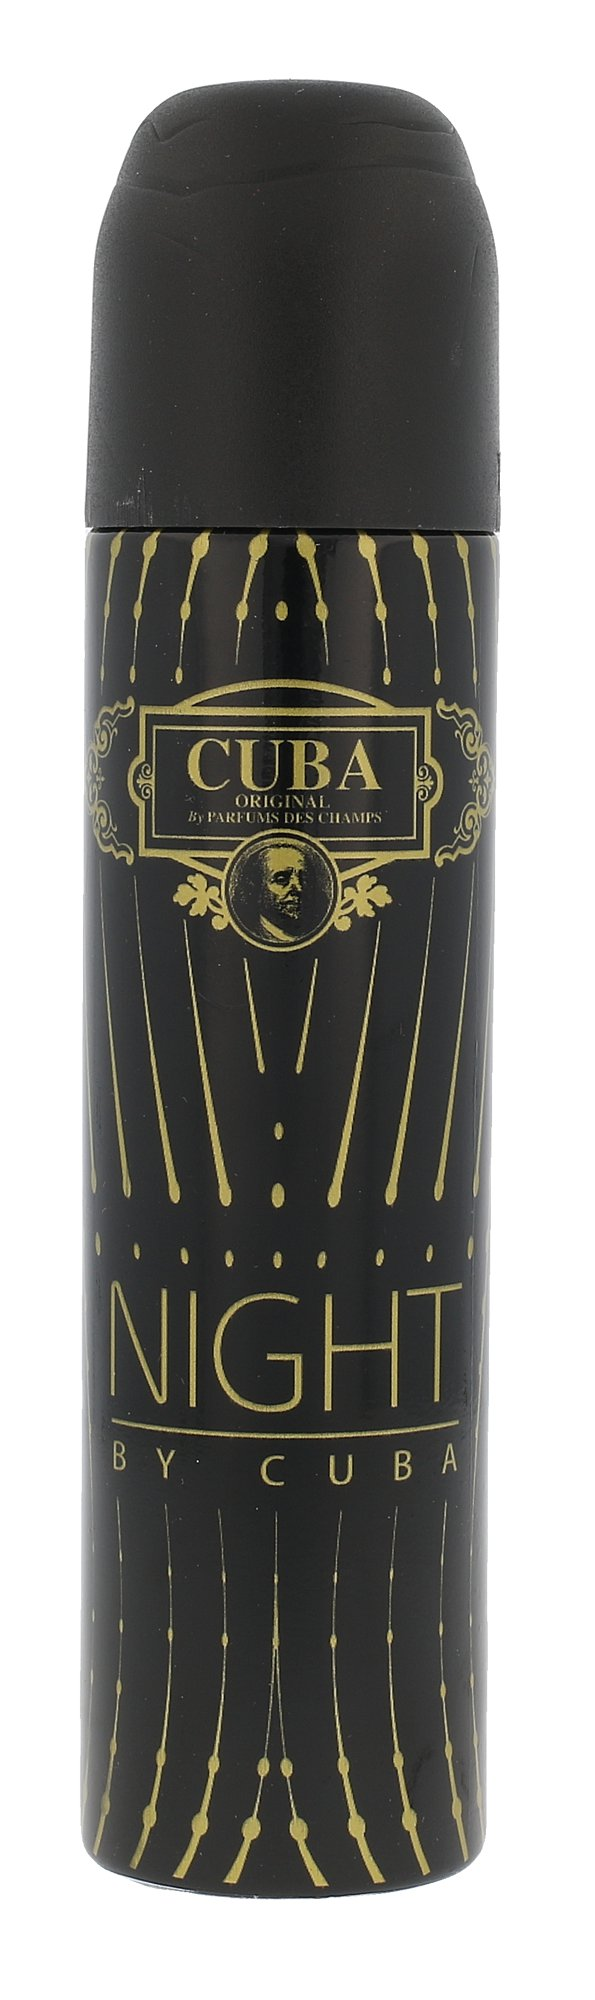 Cuba Cuba Night, edp 100ml